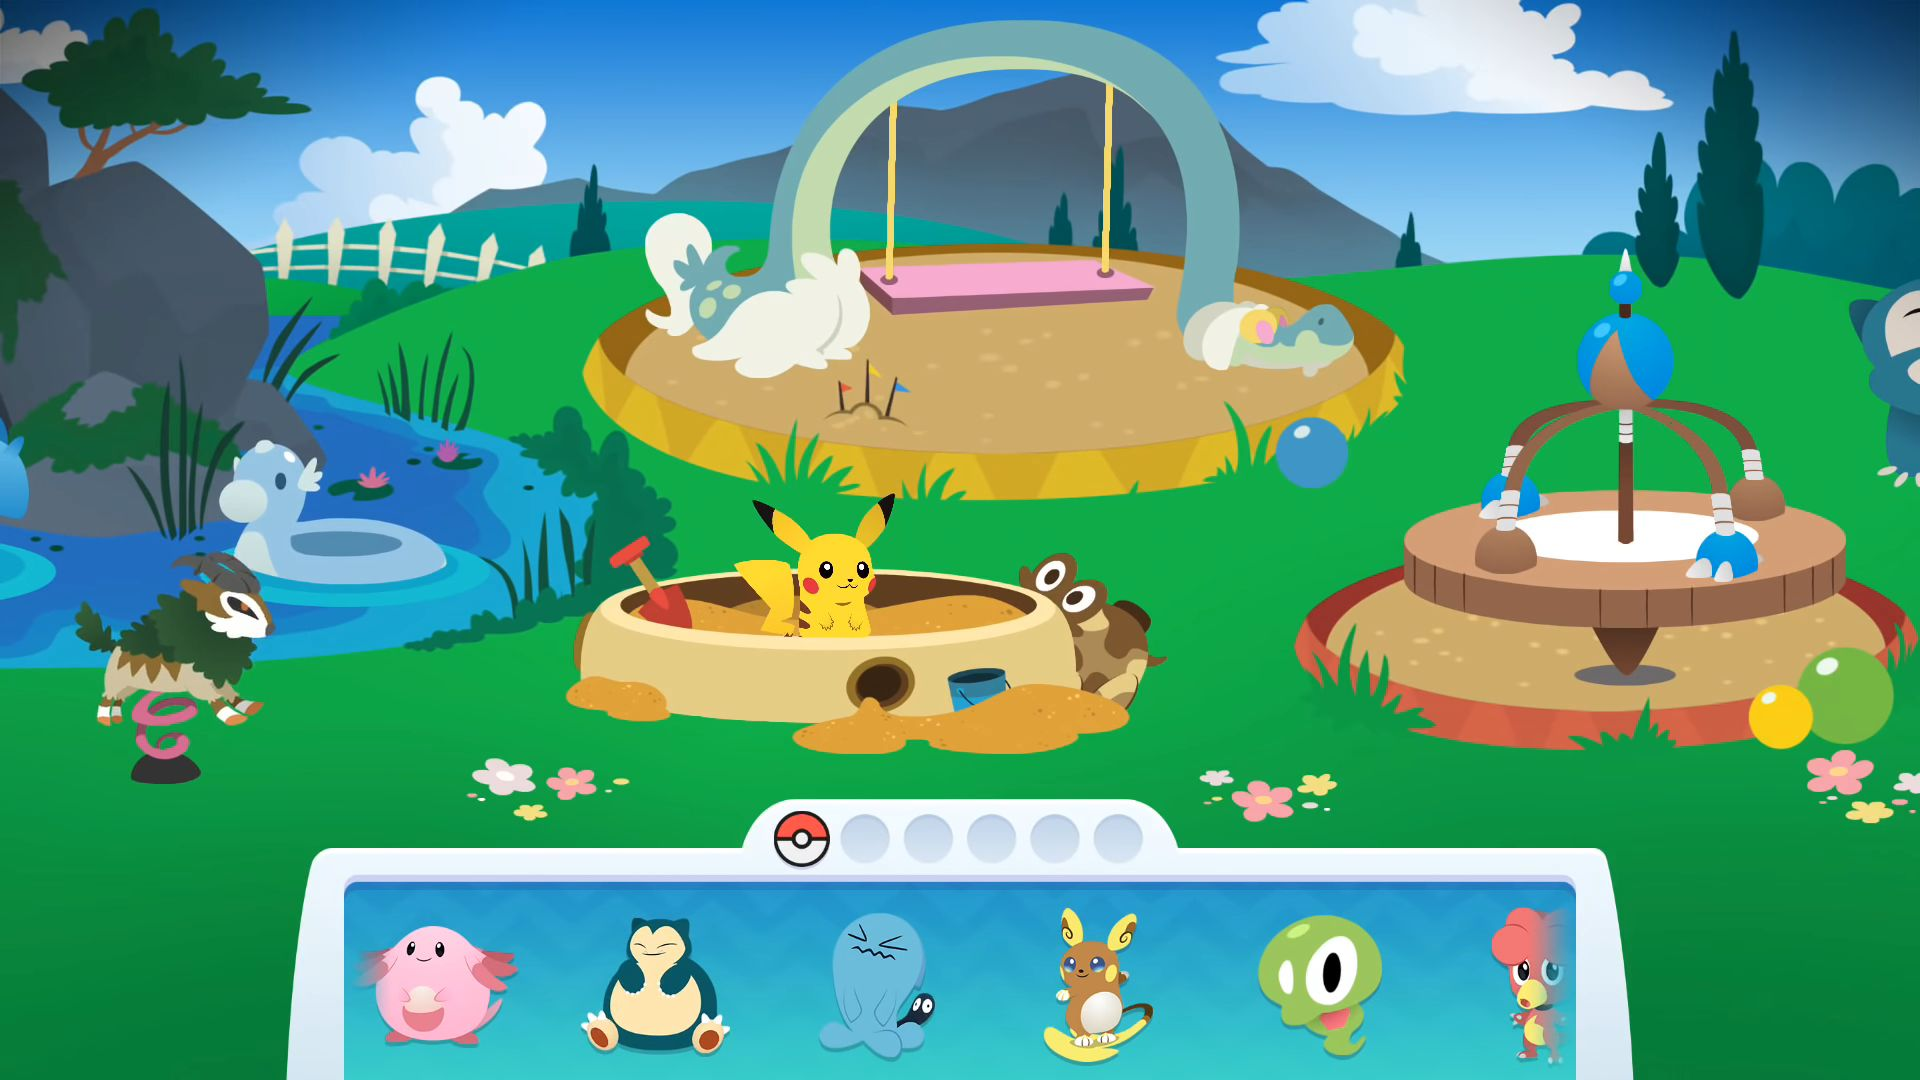 Pokémon Playhouse for Android